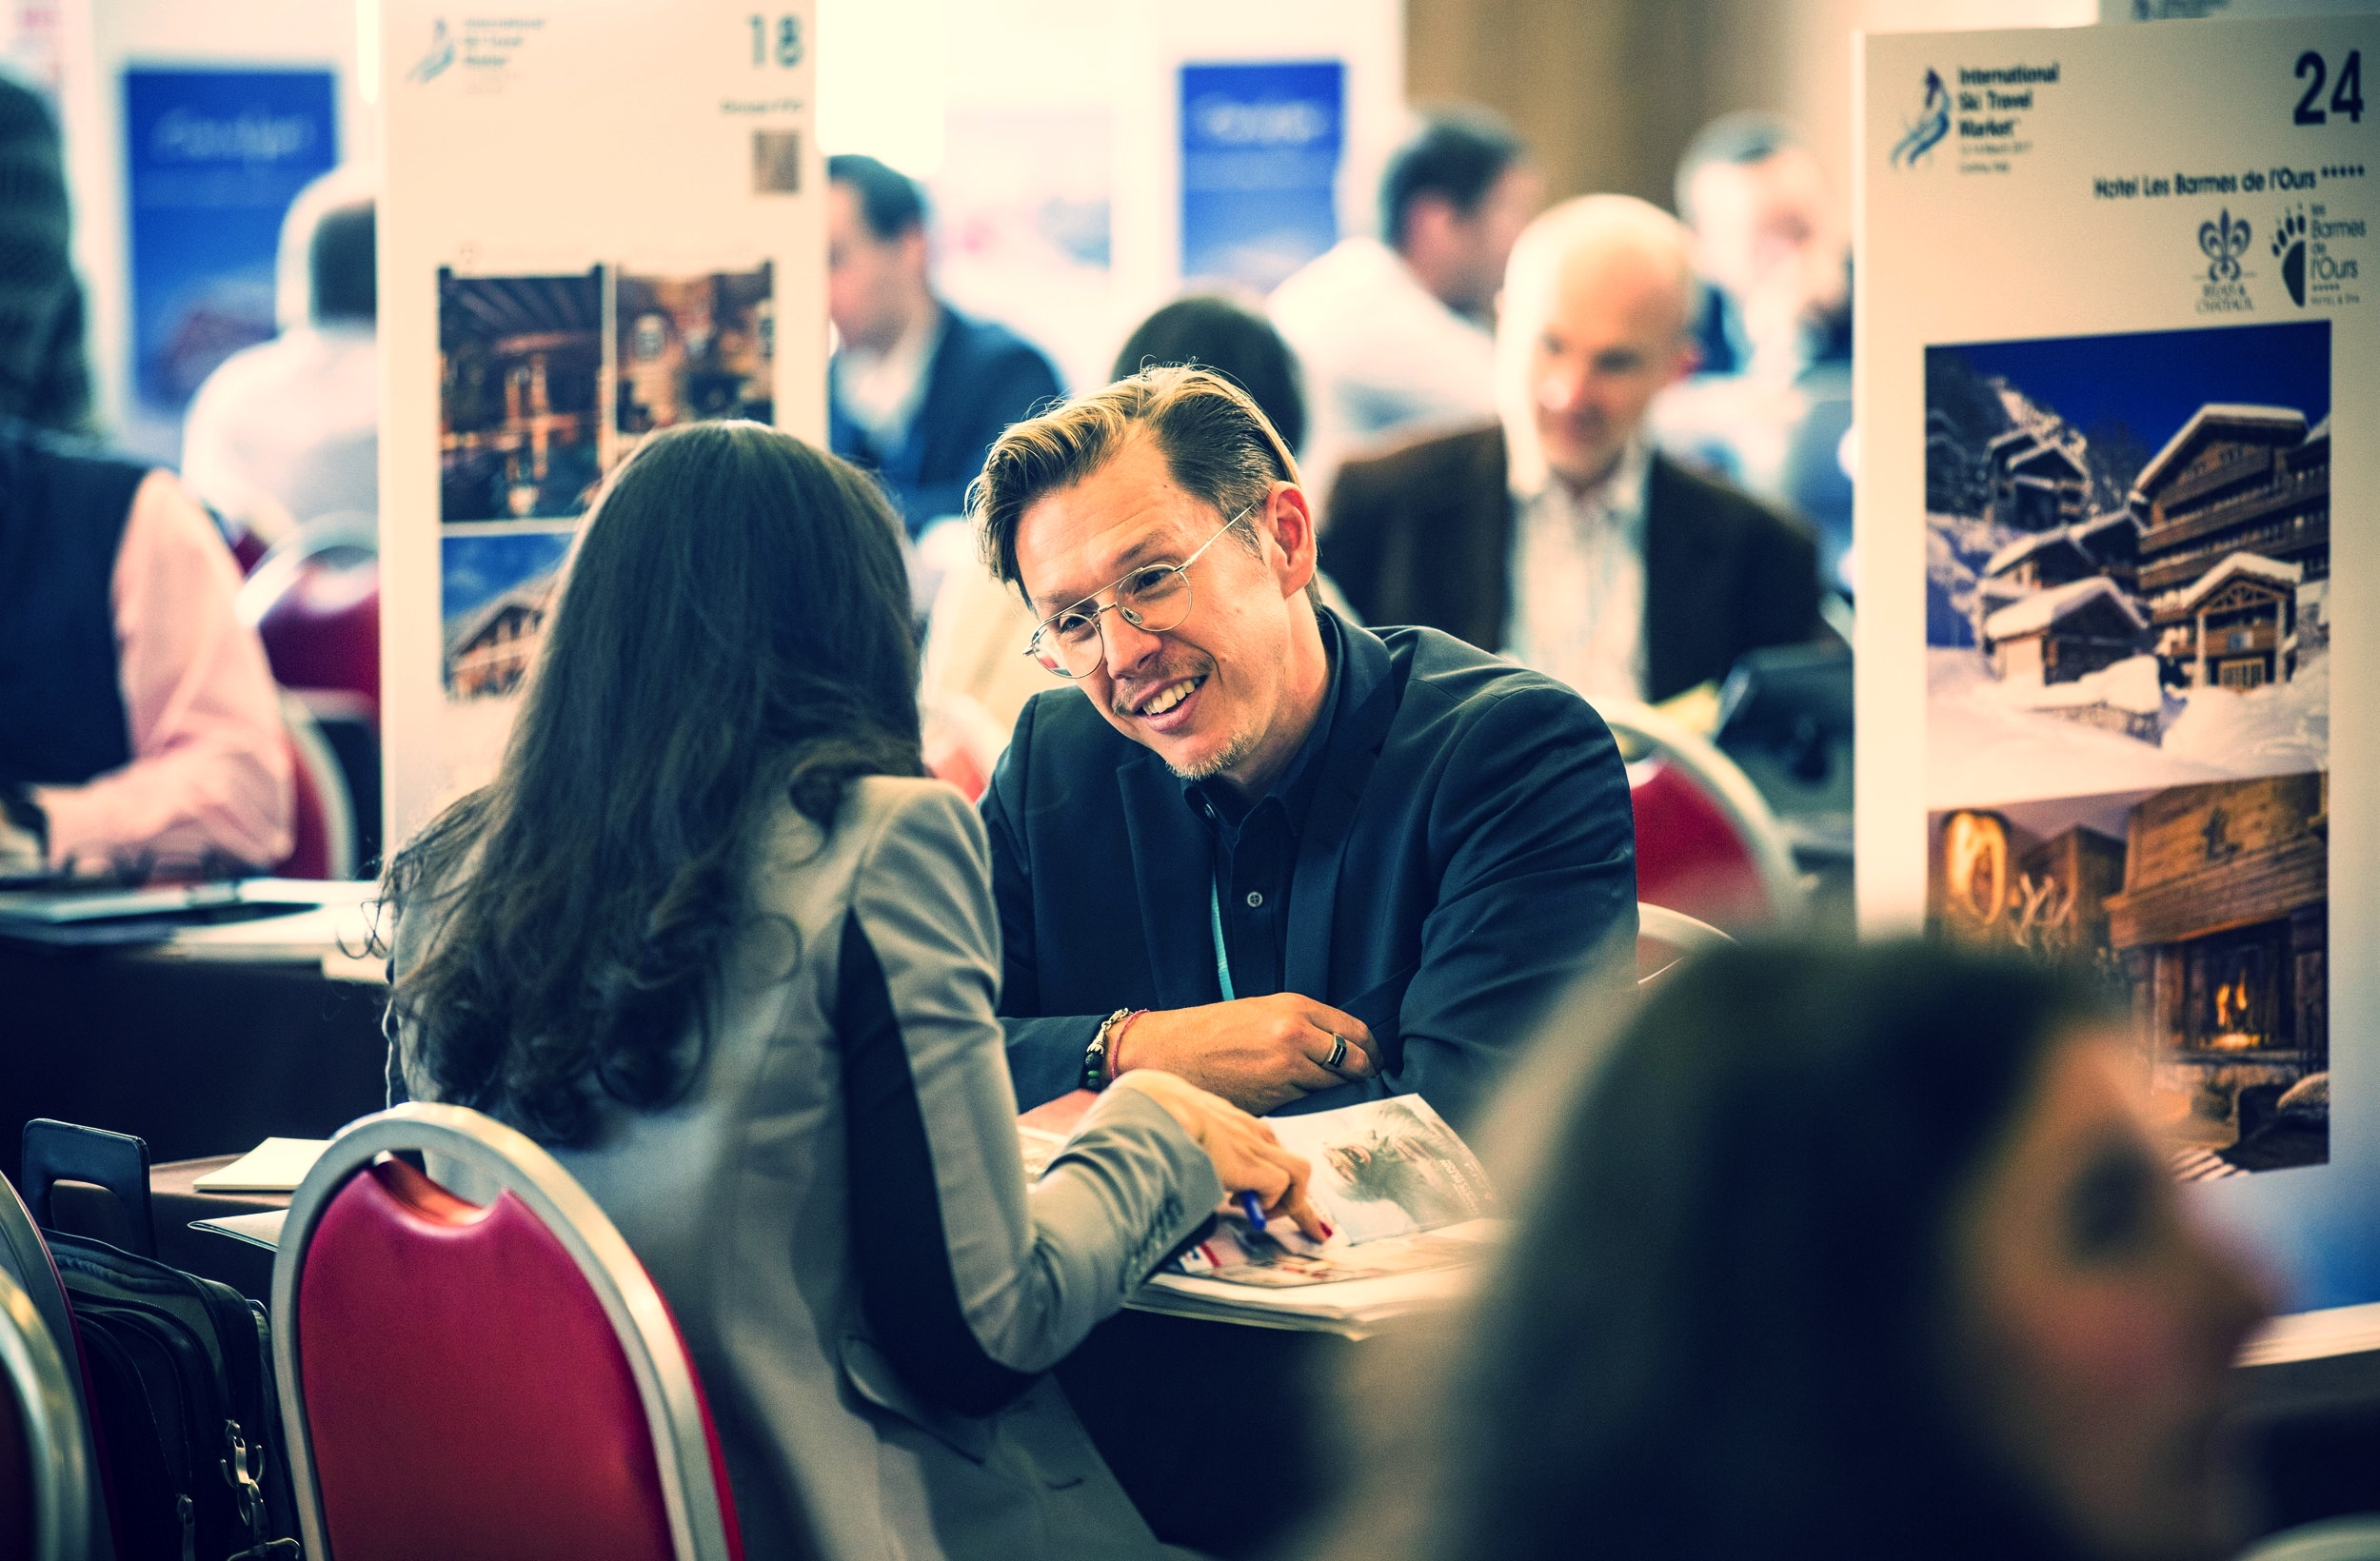 JOIN US AS A HOSTED BUYER - Are you looking to grow your network, develop your business, strengthen relationships? Discover why ISTM should be the first event in your diary in 2020.